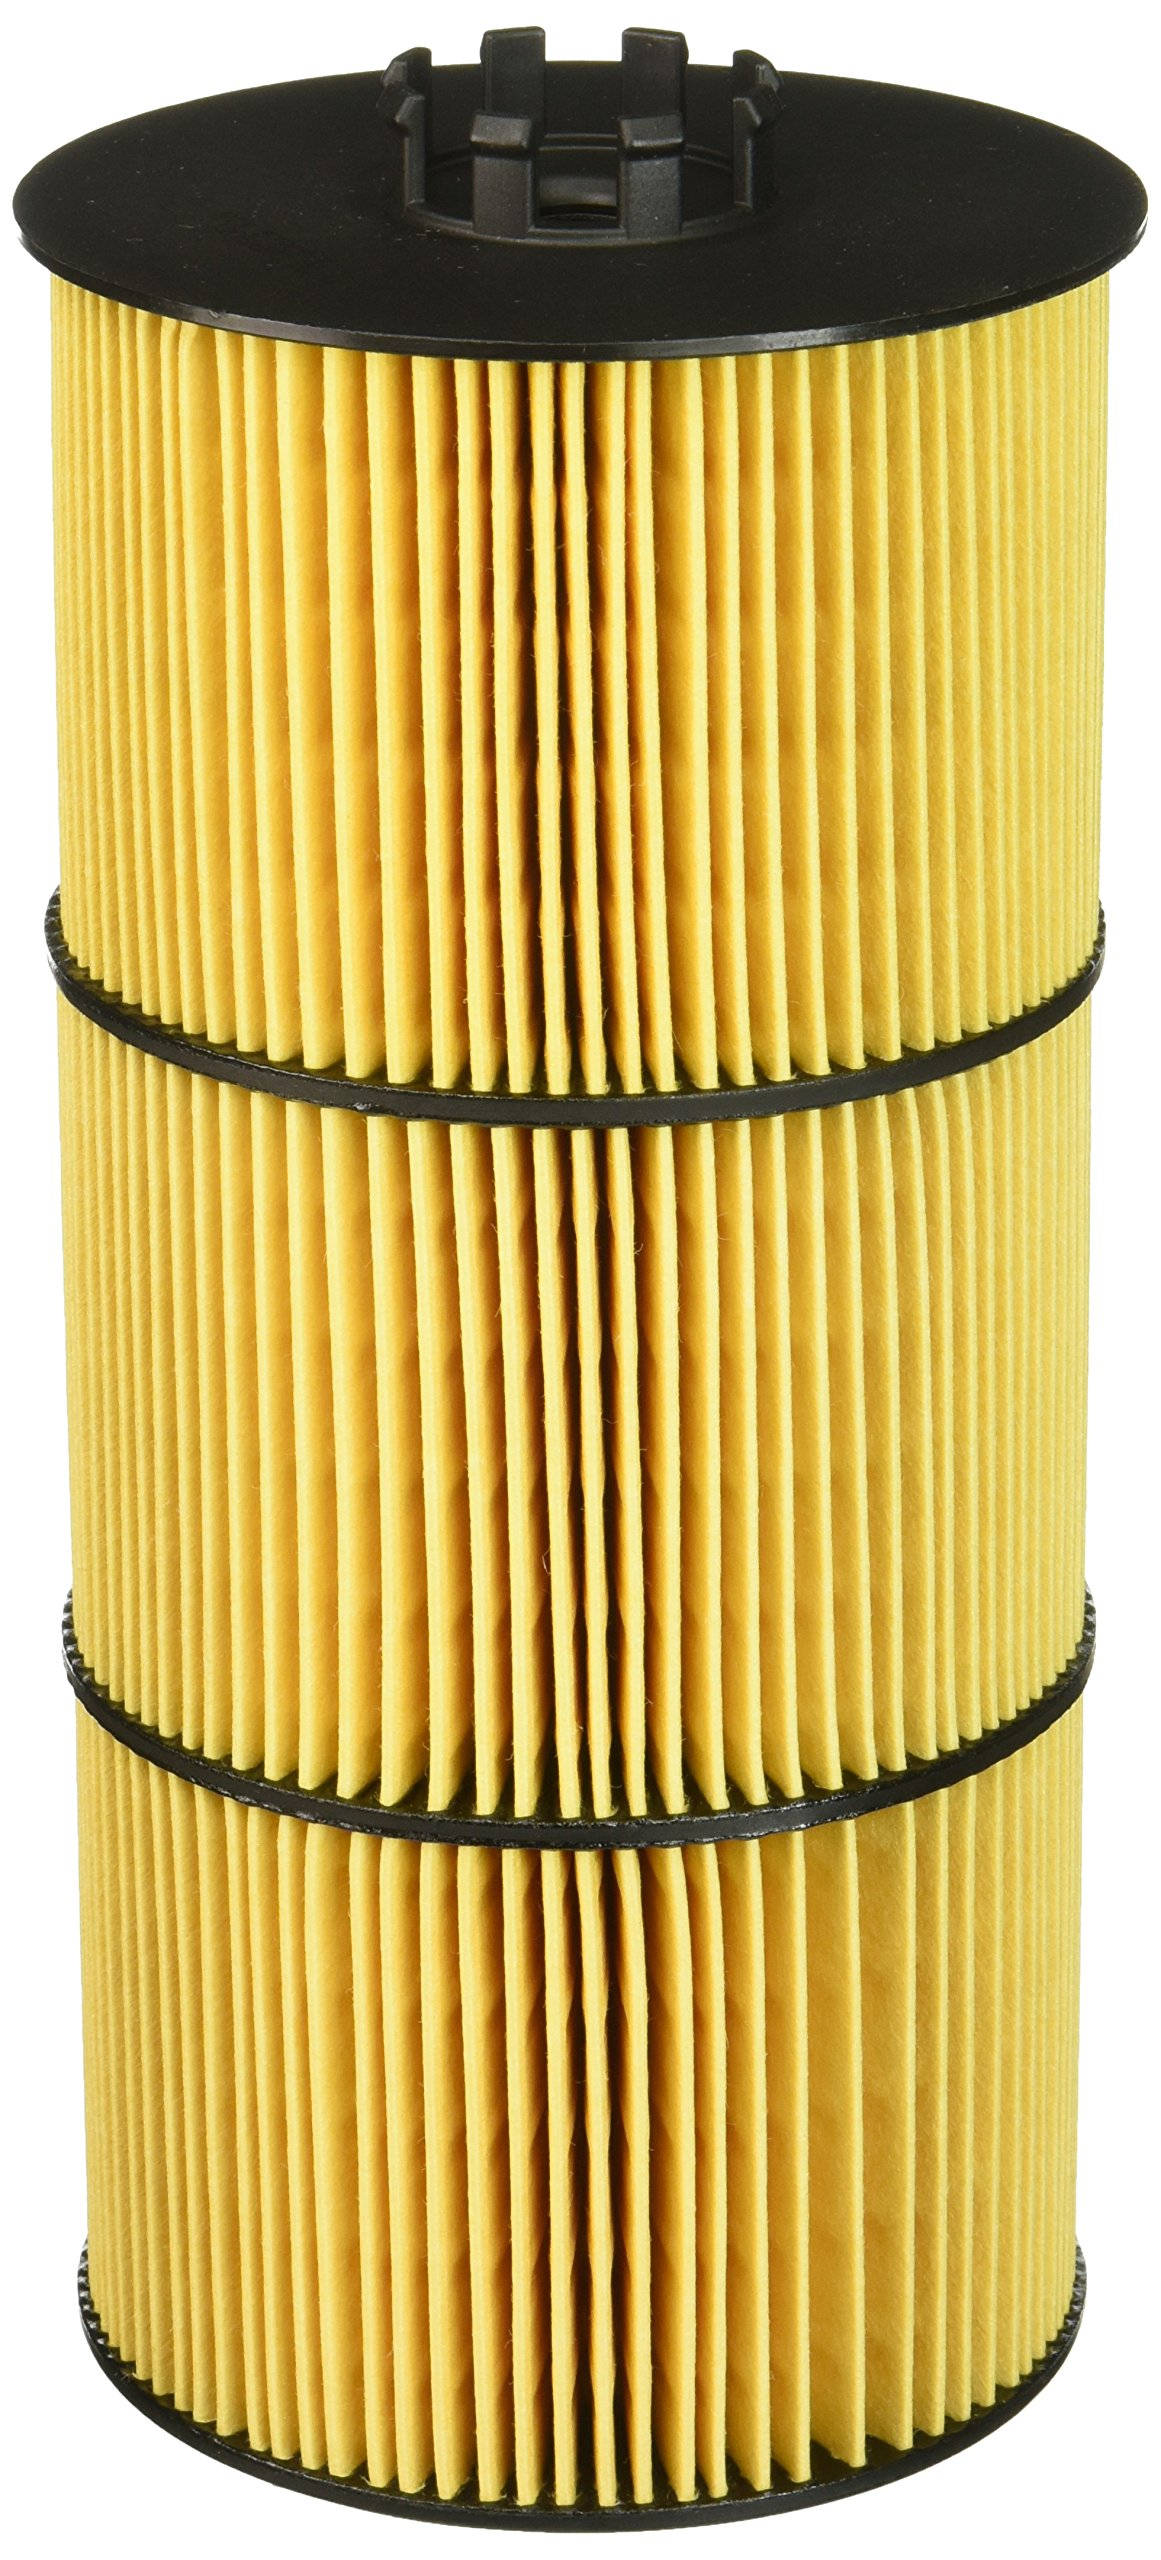 WIX Filters - 57909 Heavy Duty Cartridge Lube Metal Free, Pack of 1 by Wix